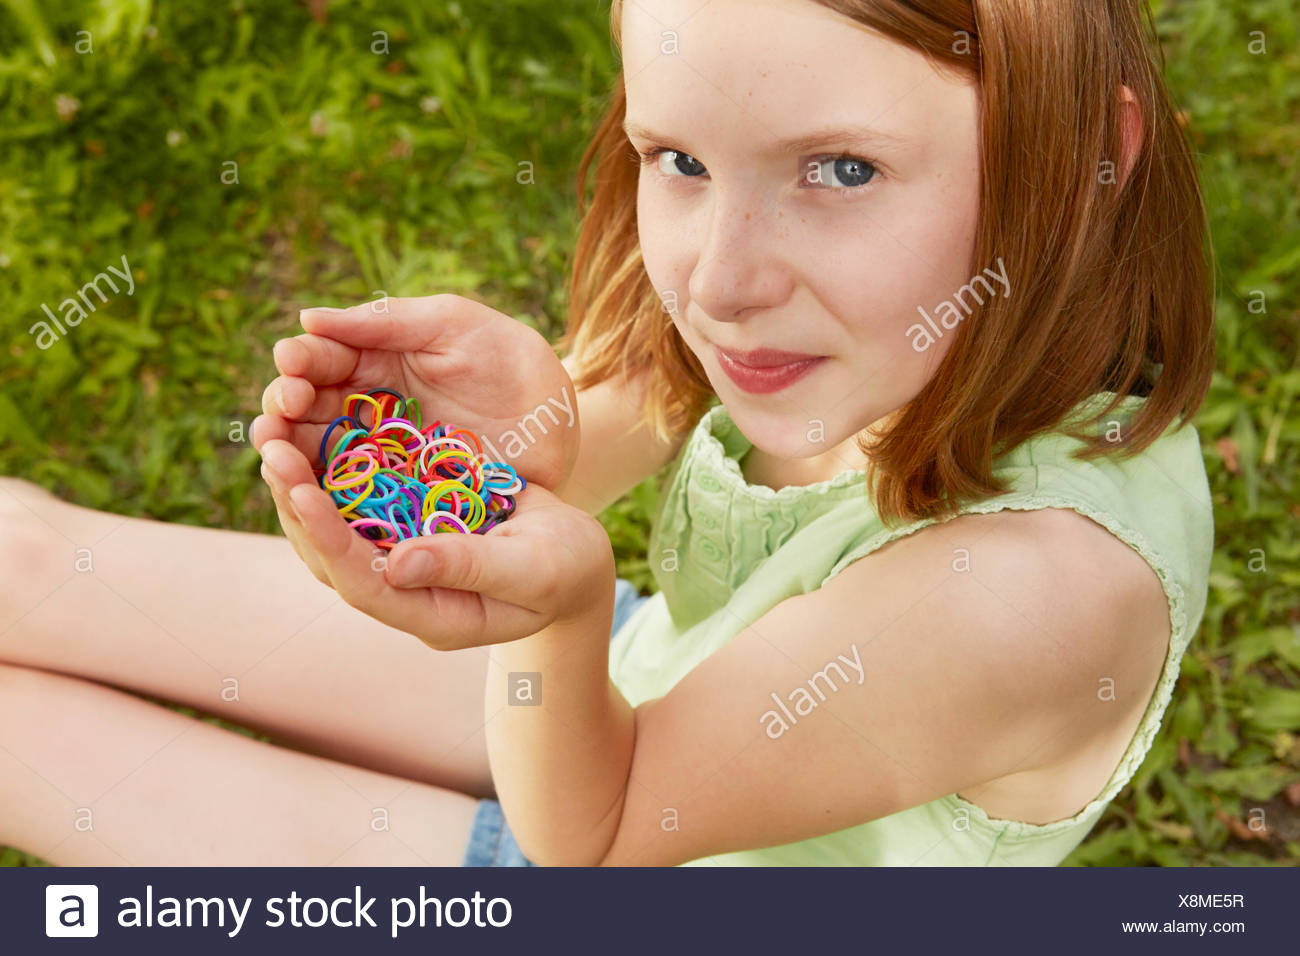 Portrait of girl in garden holding up rubber bands - Stock Image